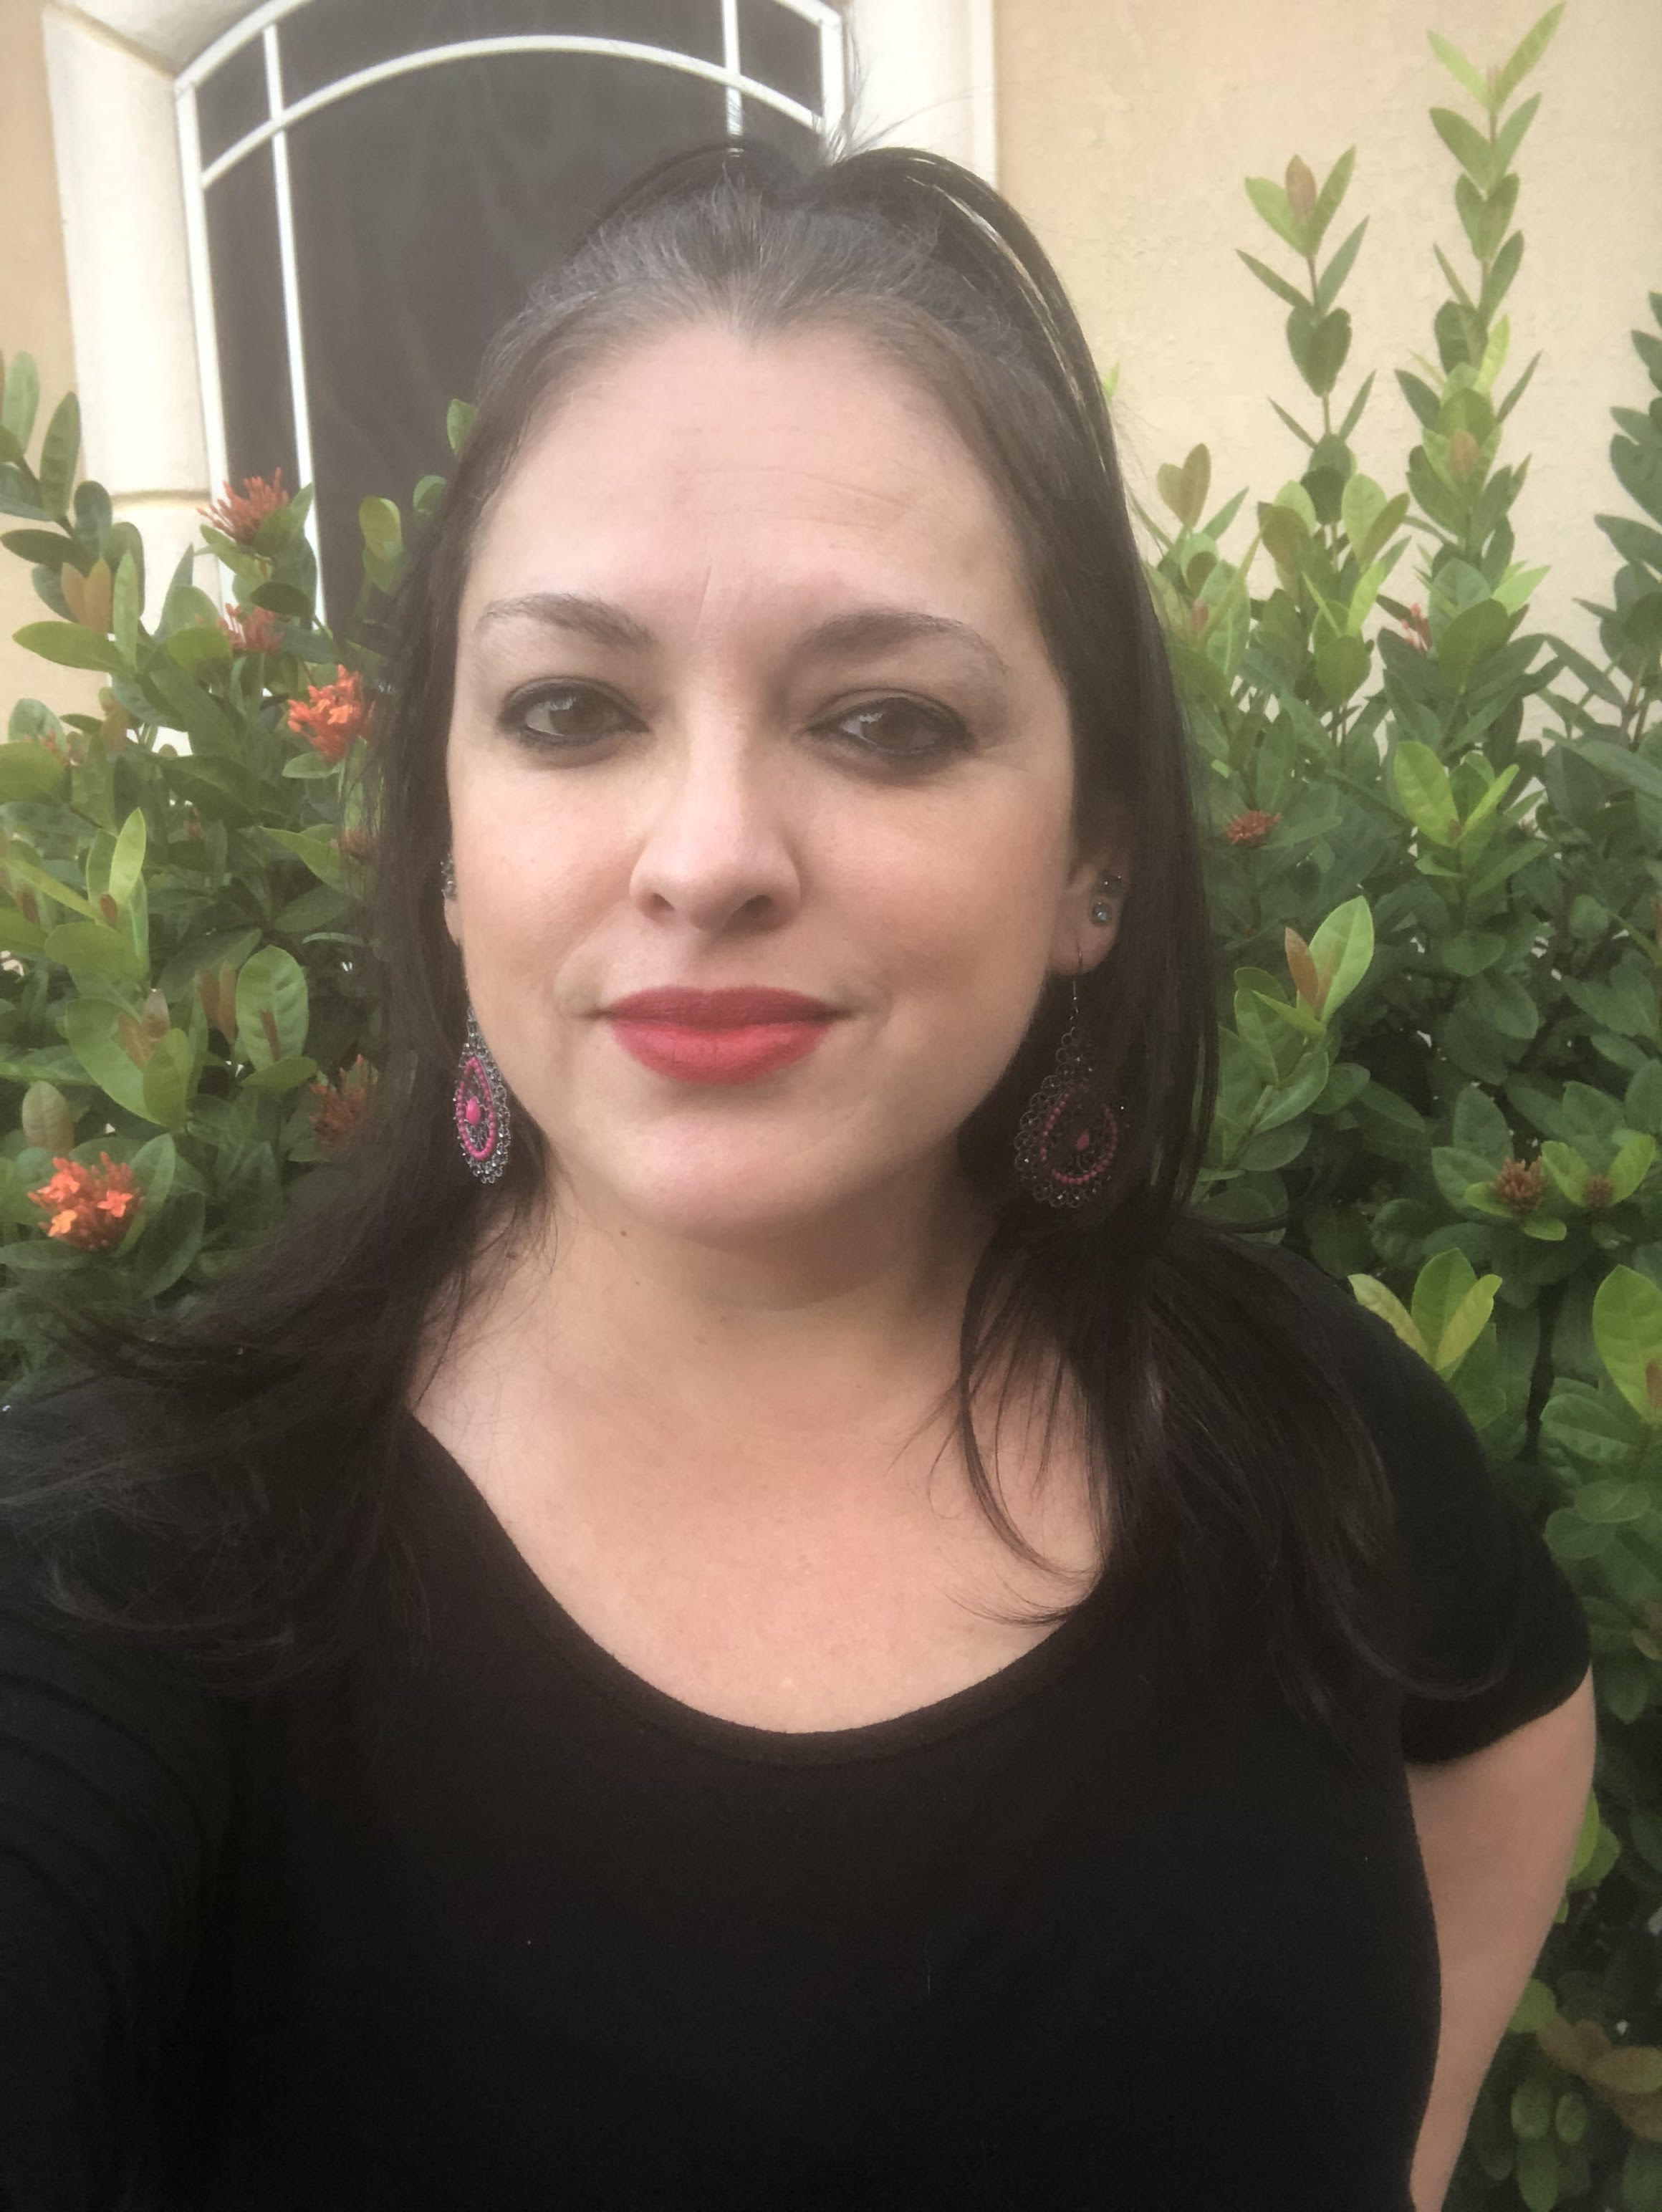 Linda Lugo - Hispanic female with red lipstick, black shirt and greenery with few pink flowers in background.